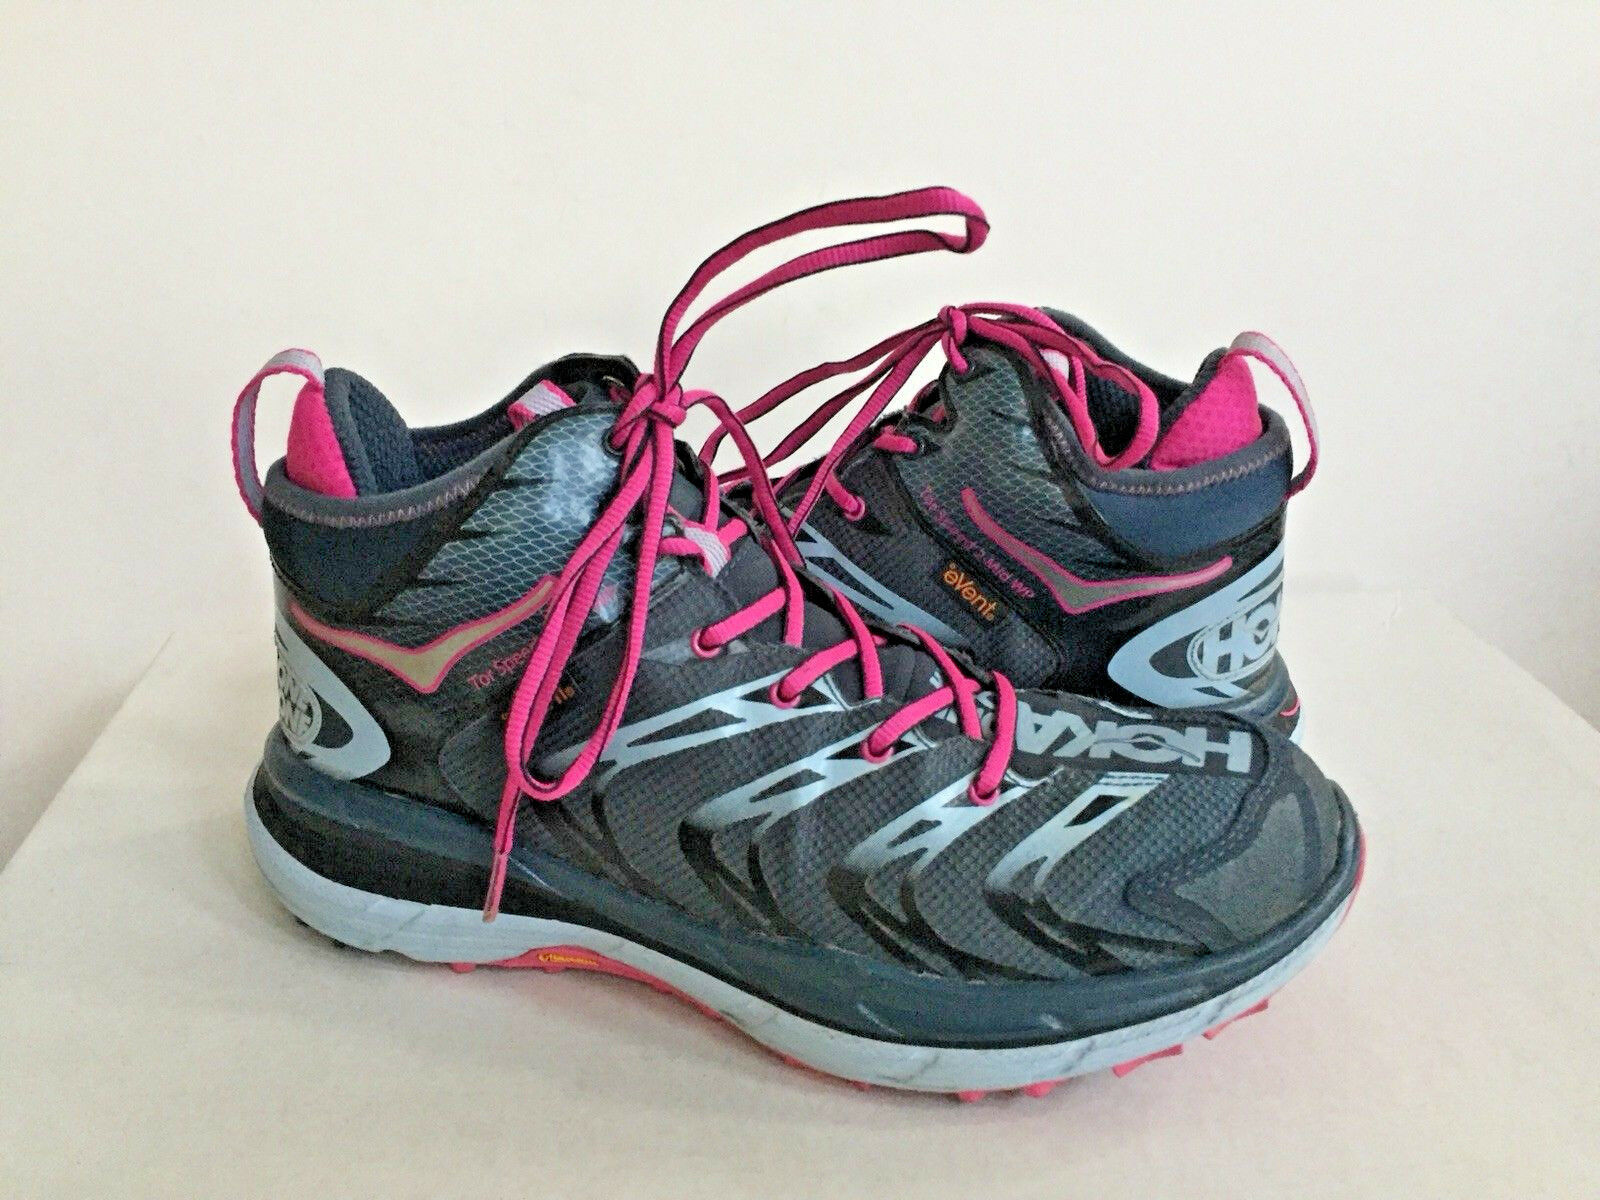 HOKA ONE FRAUEN SPEED 2 MID NAVY NEON FUCHSIA US 7.5   EU 39 1  3   UK 6